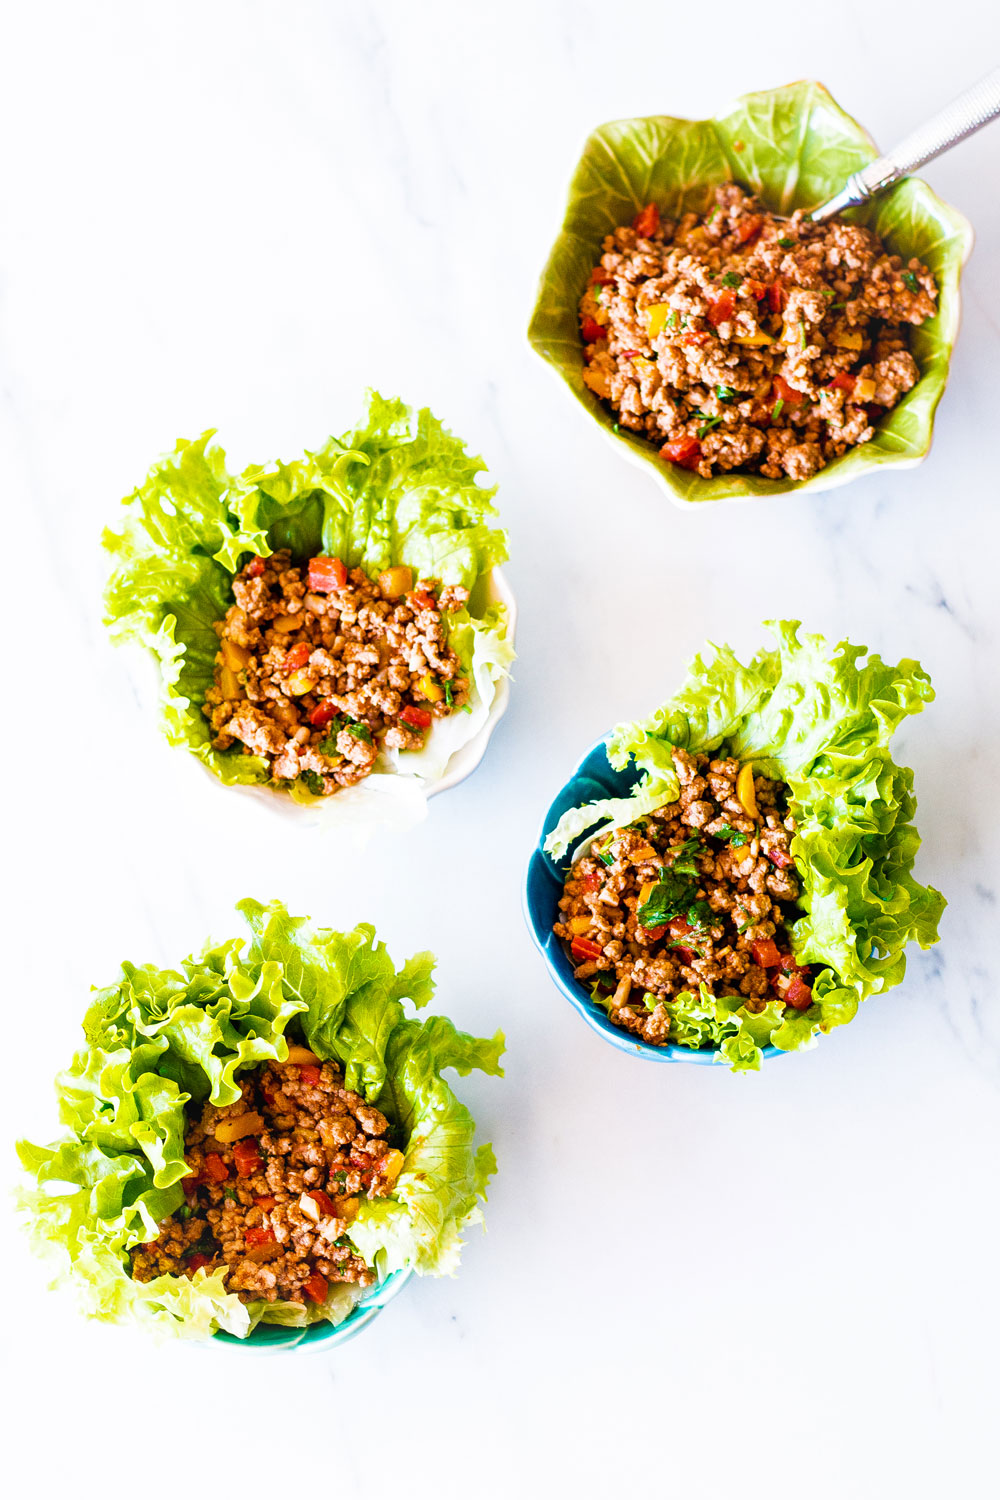 Quick and light, these low-carb chicken lettuce wraps are so simple to put together and make such a delicious and healthy weeknight dinner. https://www.spotebi.com/recipes/low-carb-chicken-lettuce-wraps/